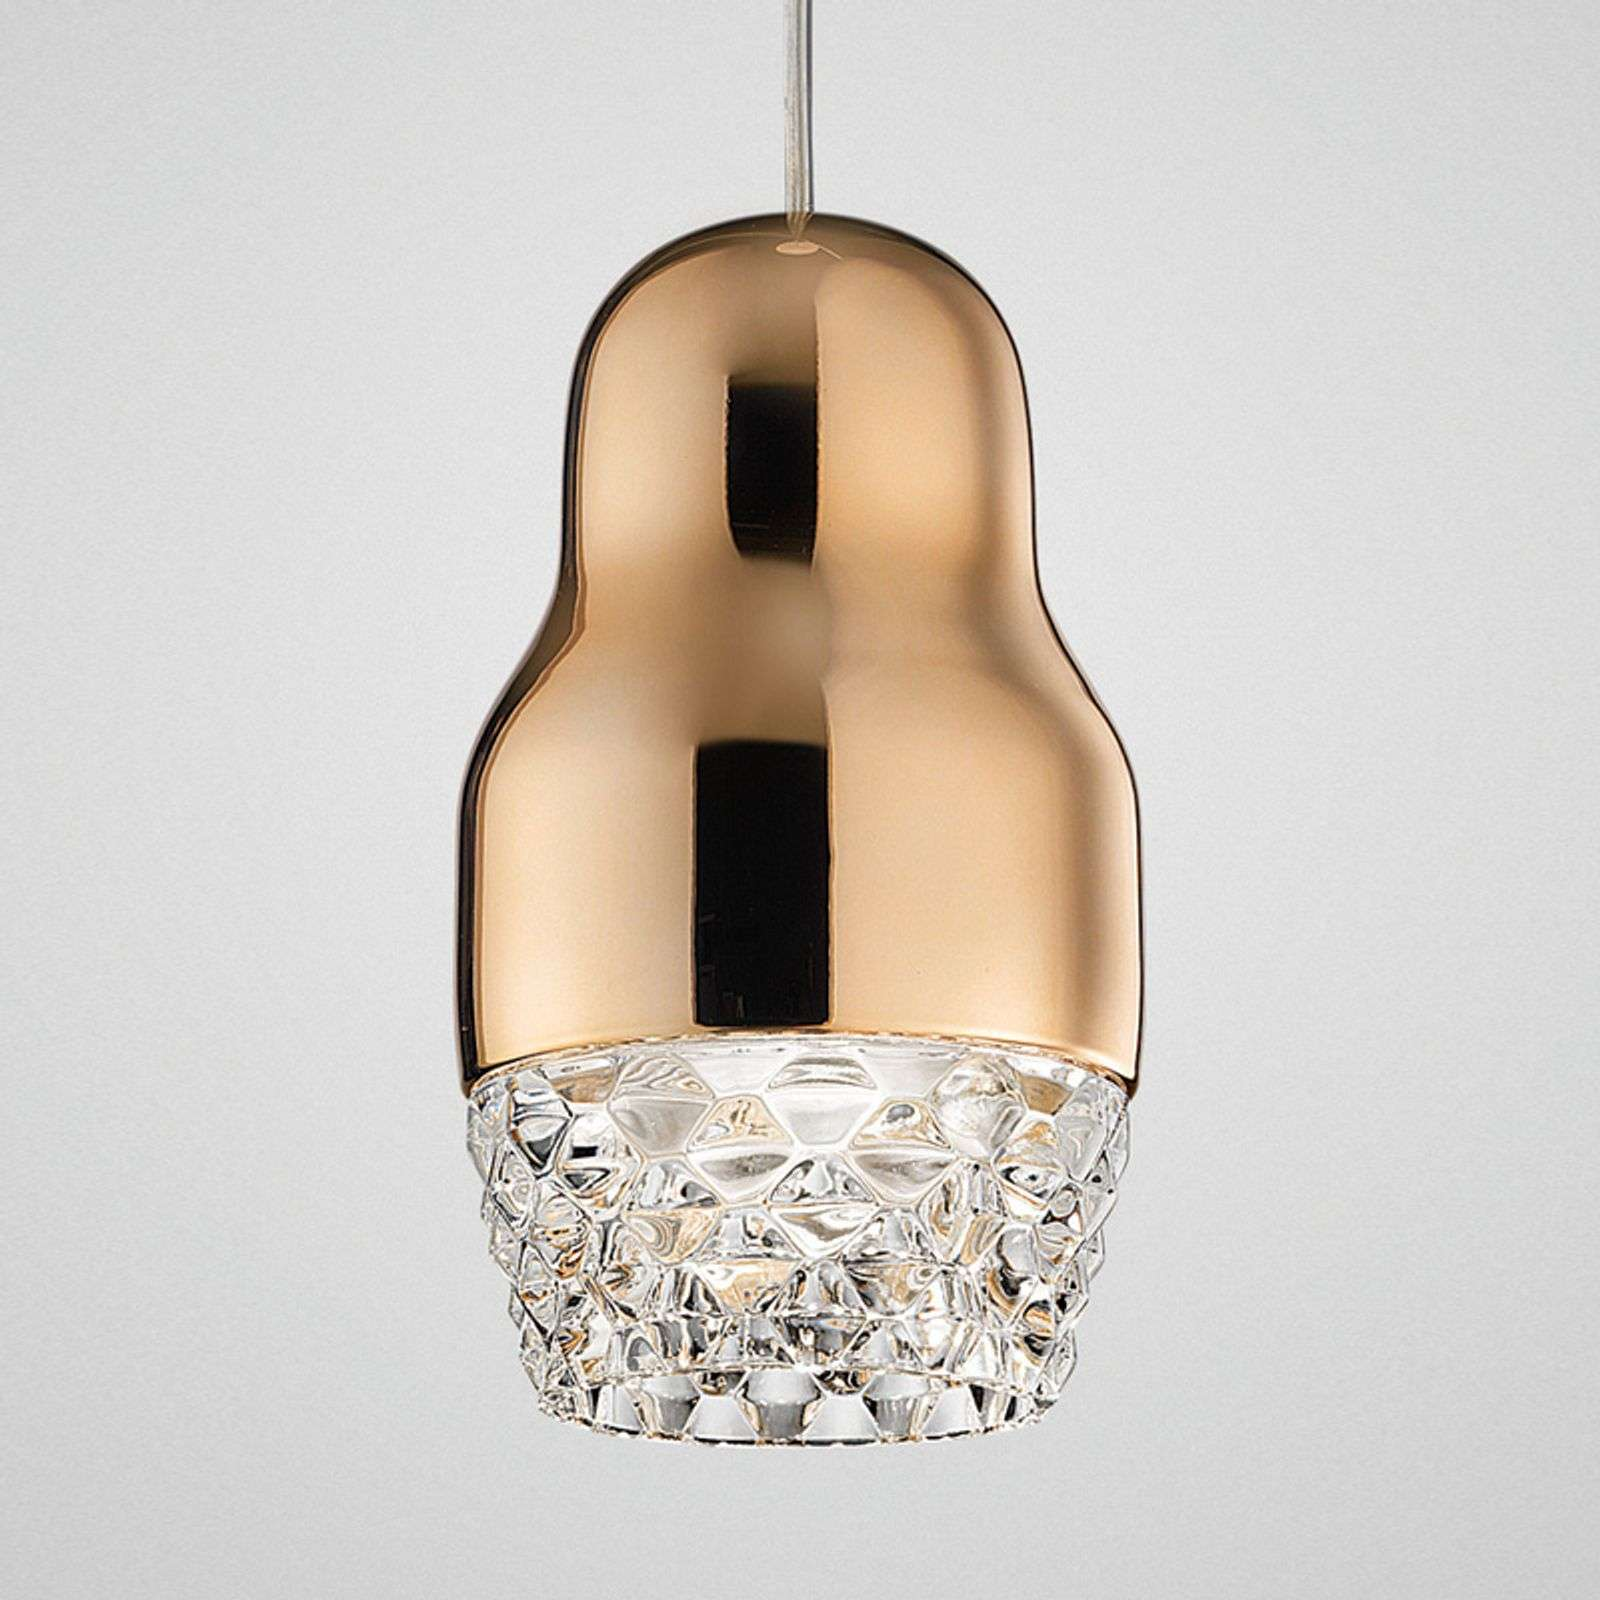 Suspension LED à 1 lampe Fedora rose doré